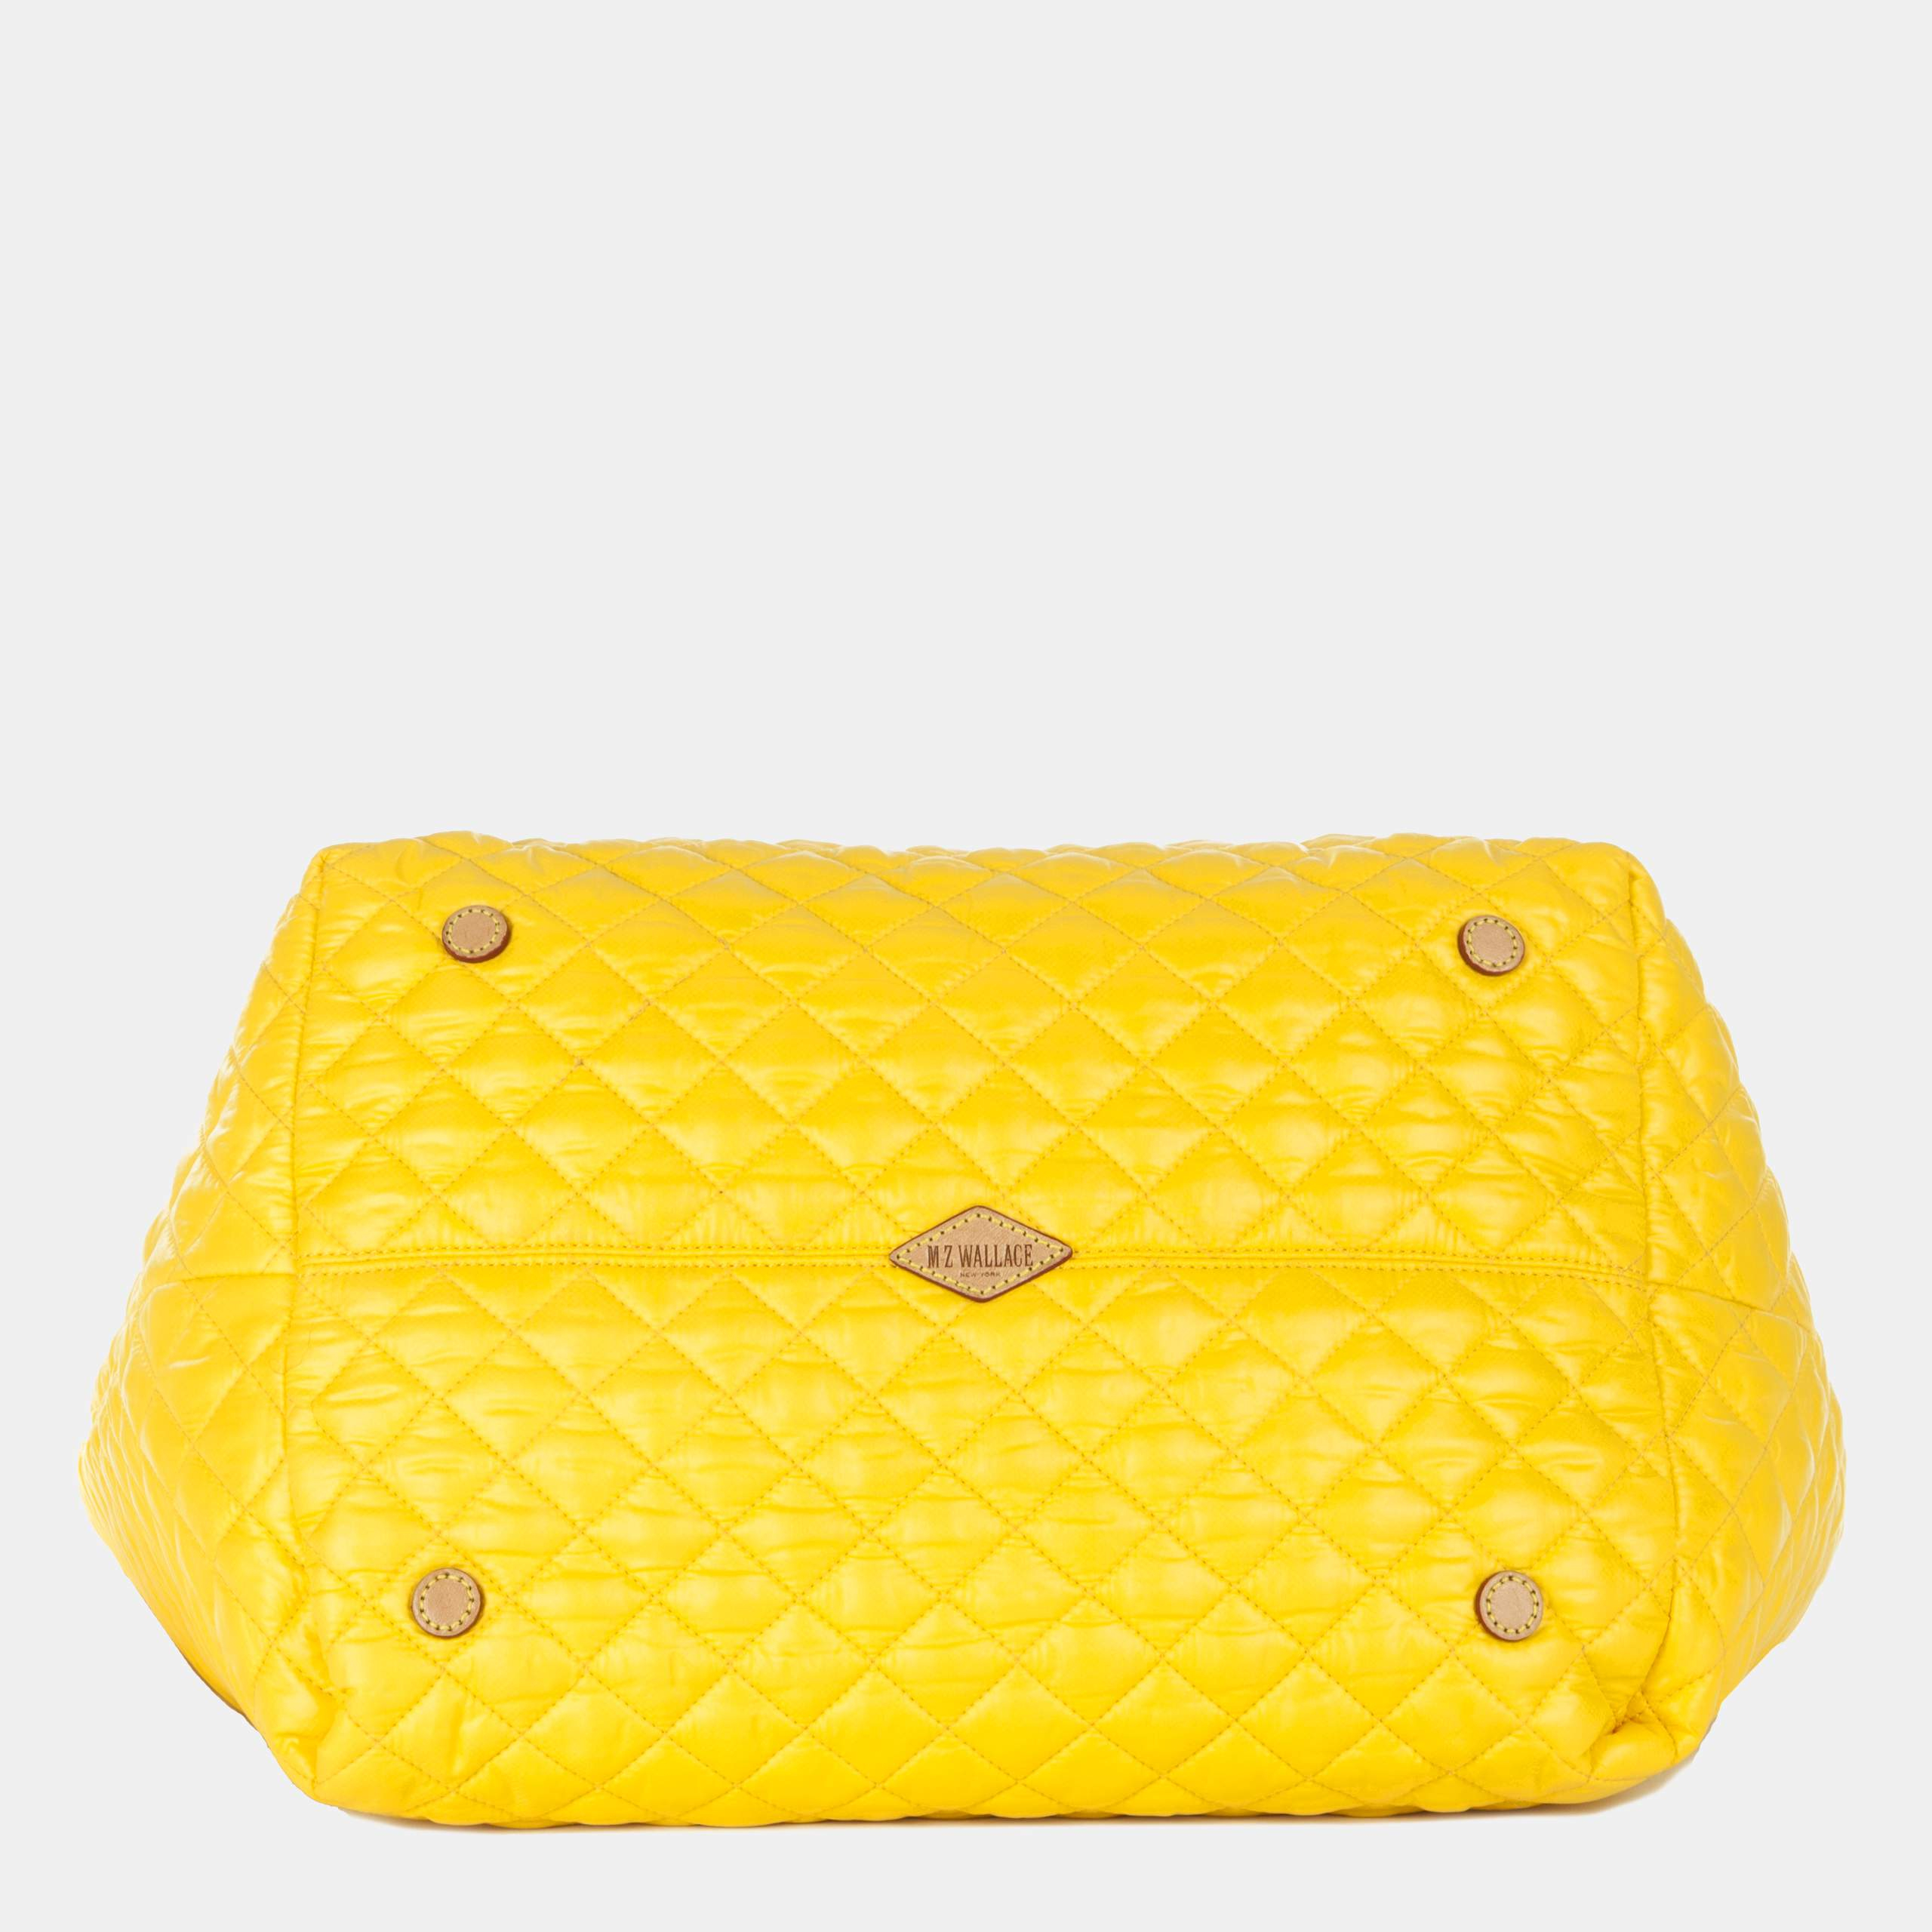 MZ Wallace Large Metro Tote Bright Yellow Quilted Oxford Nylon